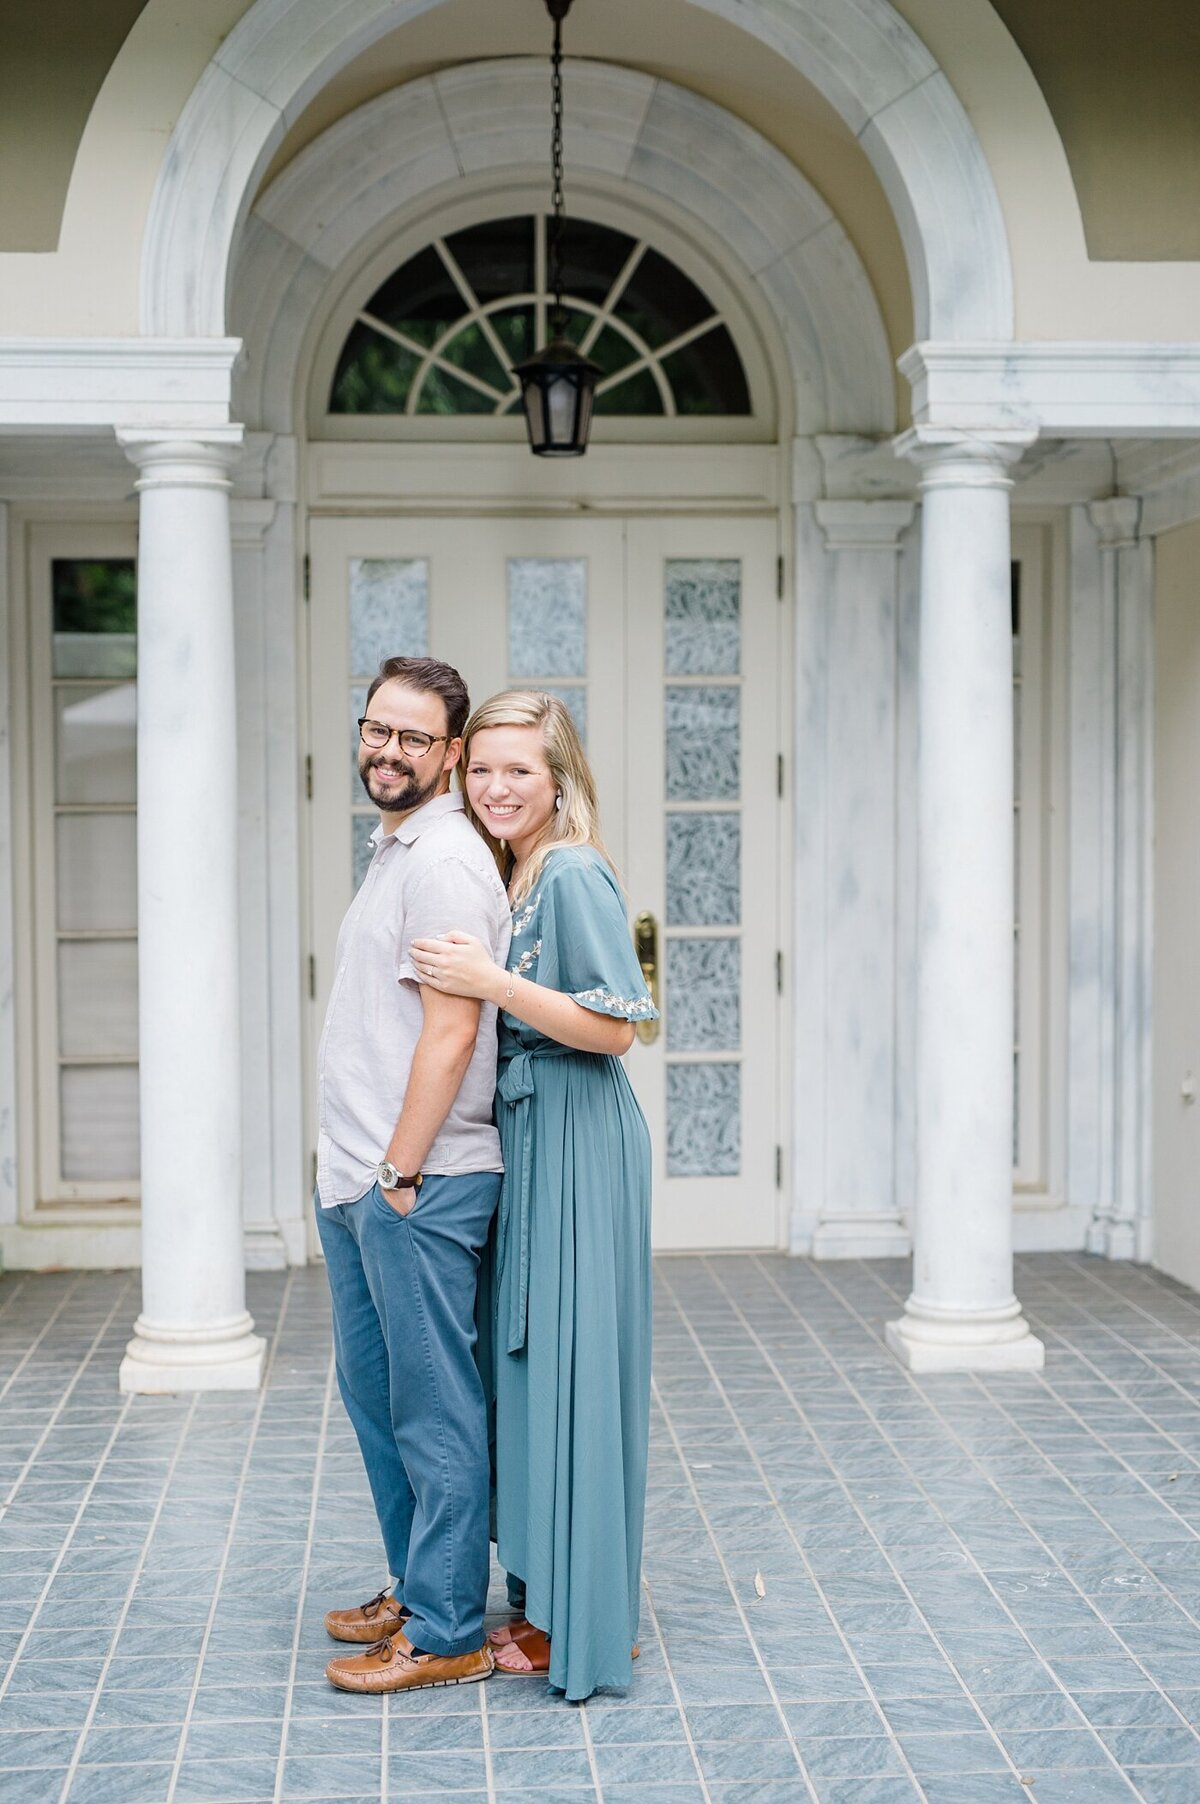 cator-woolford-gardens-engagement-wedding-photographer-laura-barnes-photo-shackelford-26